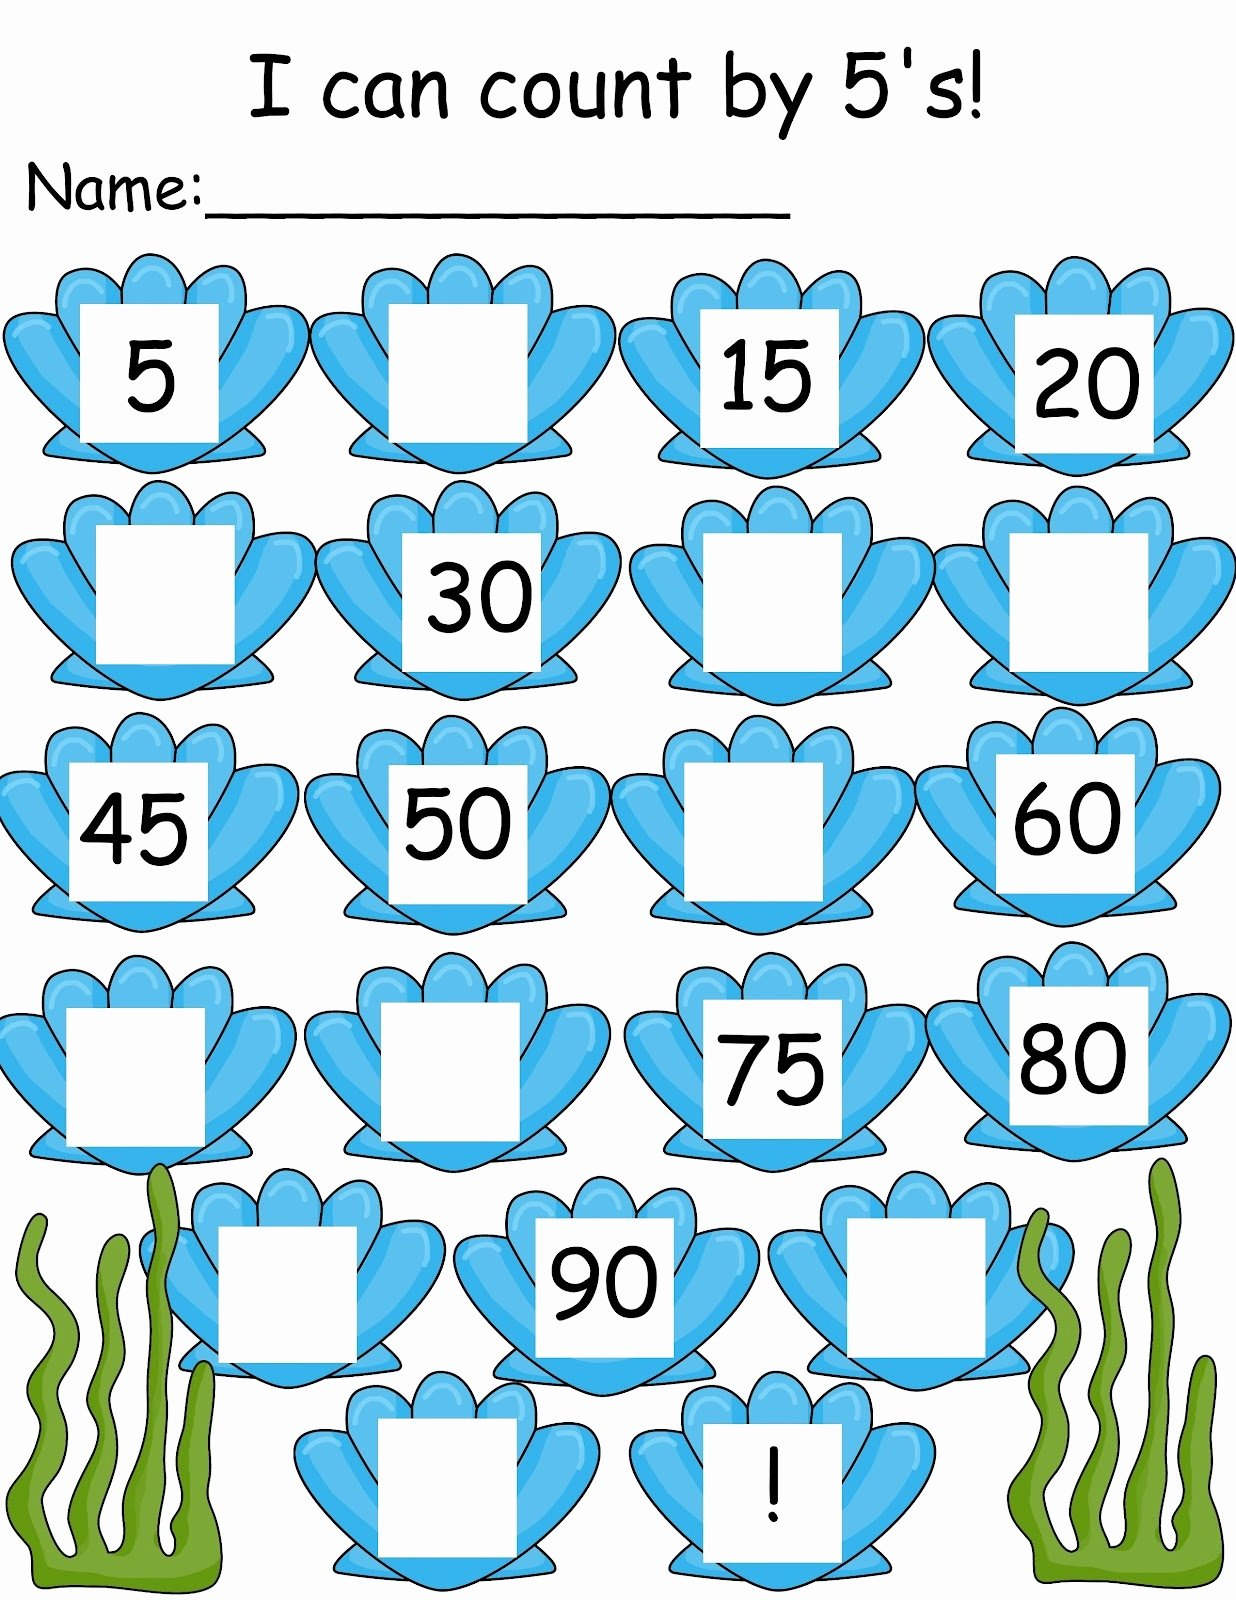 Counting In 5s Worksheet Inspirational Count by 5s Worksheets Printable